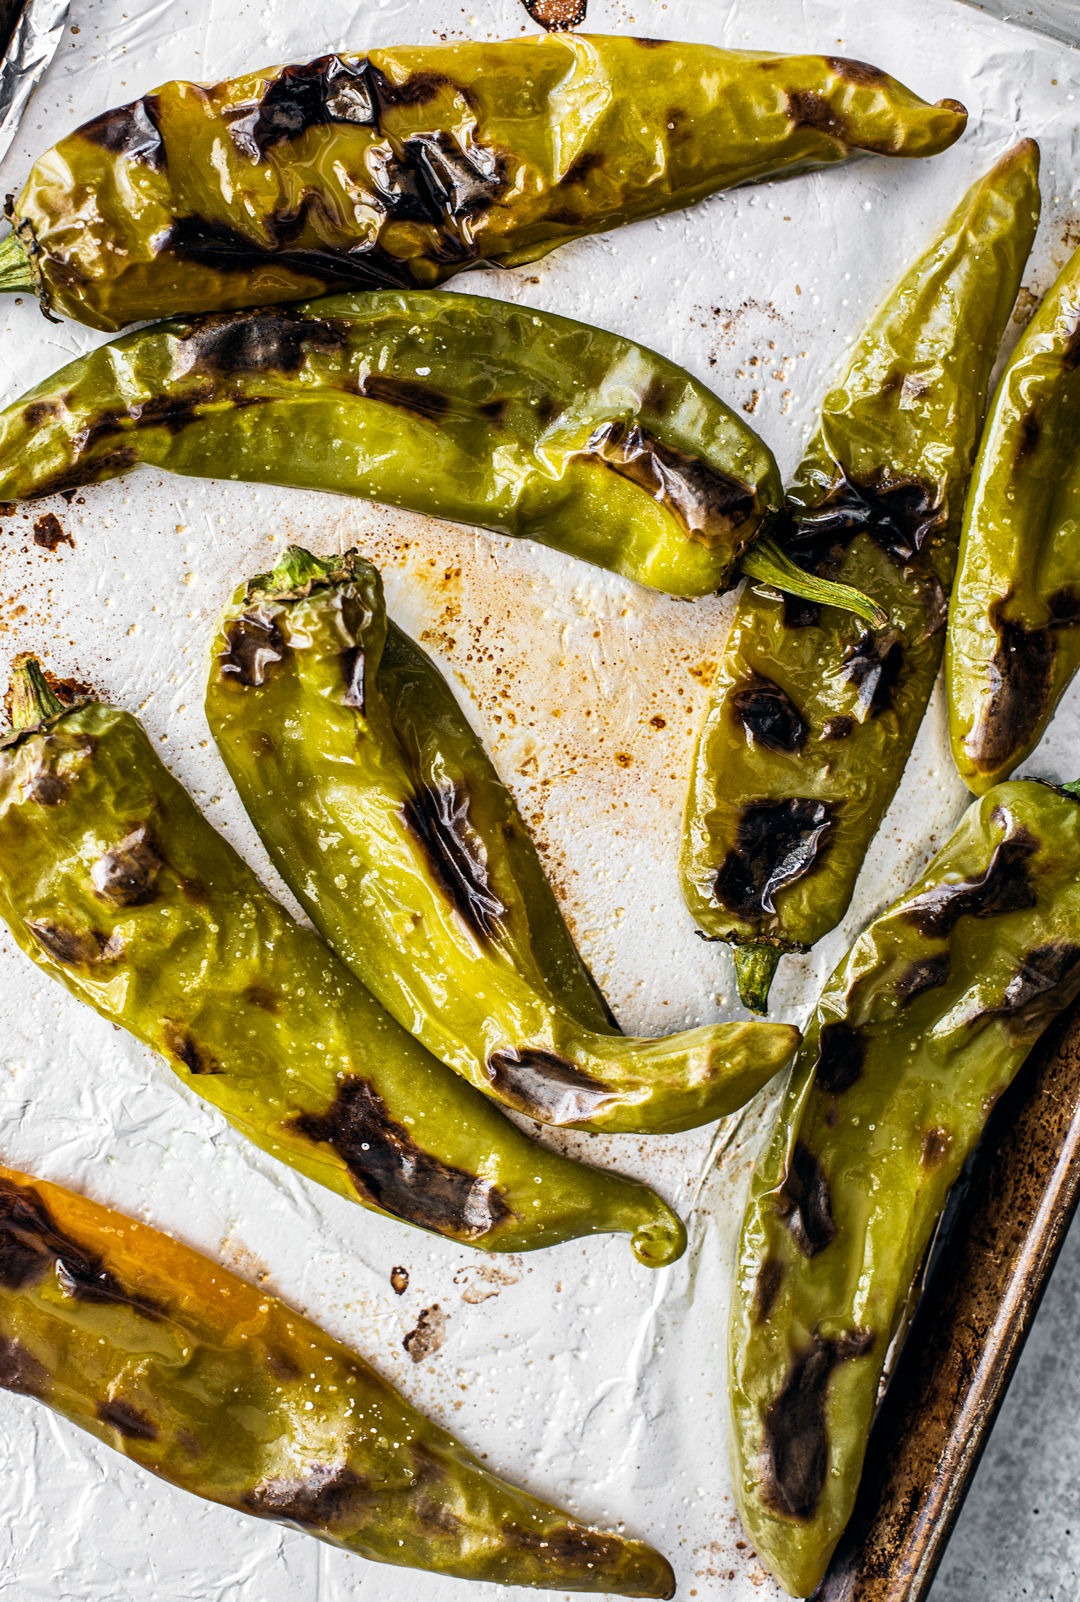 roasted hatch chiles on a baking sheet with foil.